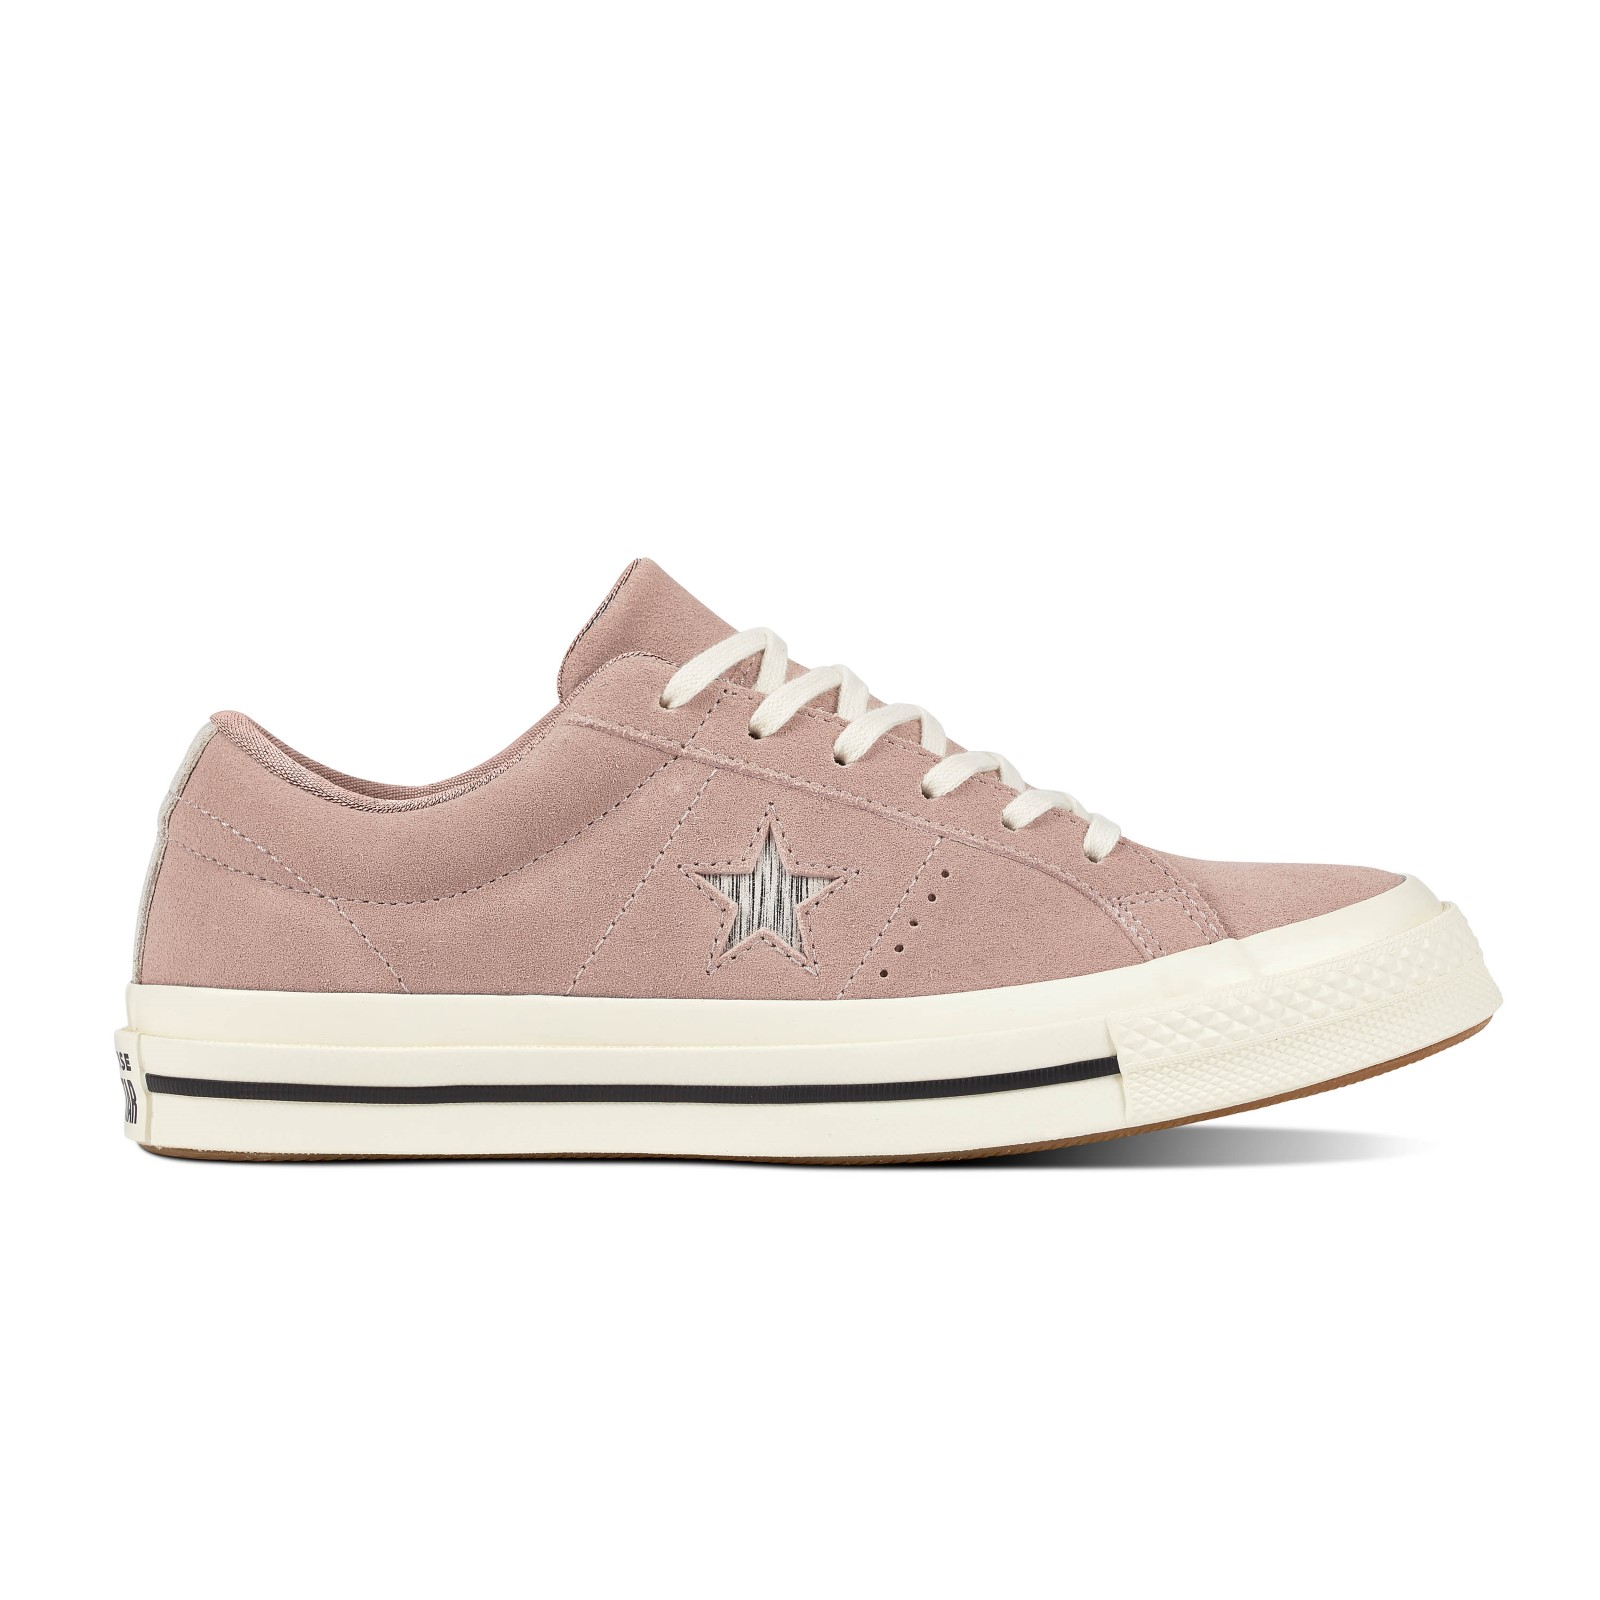 Converse pudrové kožené tenisky Chuck Taylor One Star OX Diffused Taupe/Silver/Egret